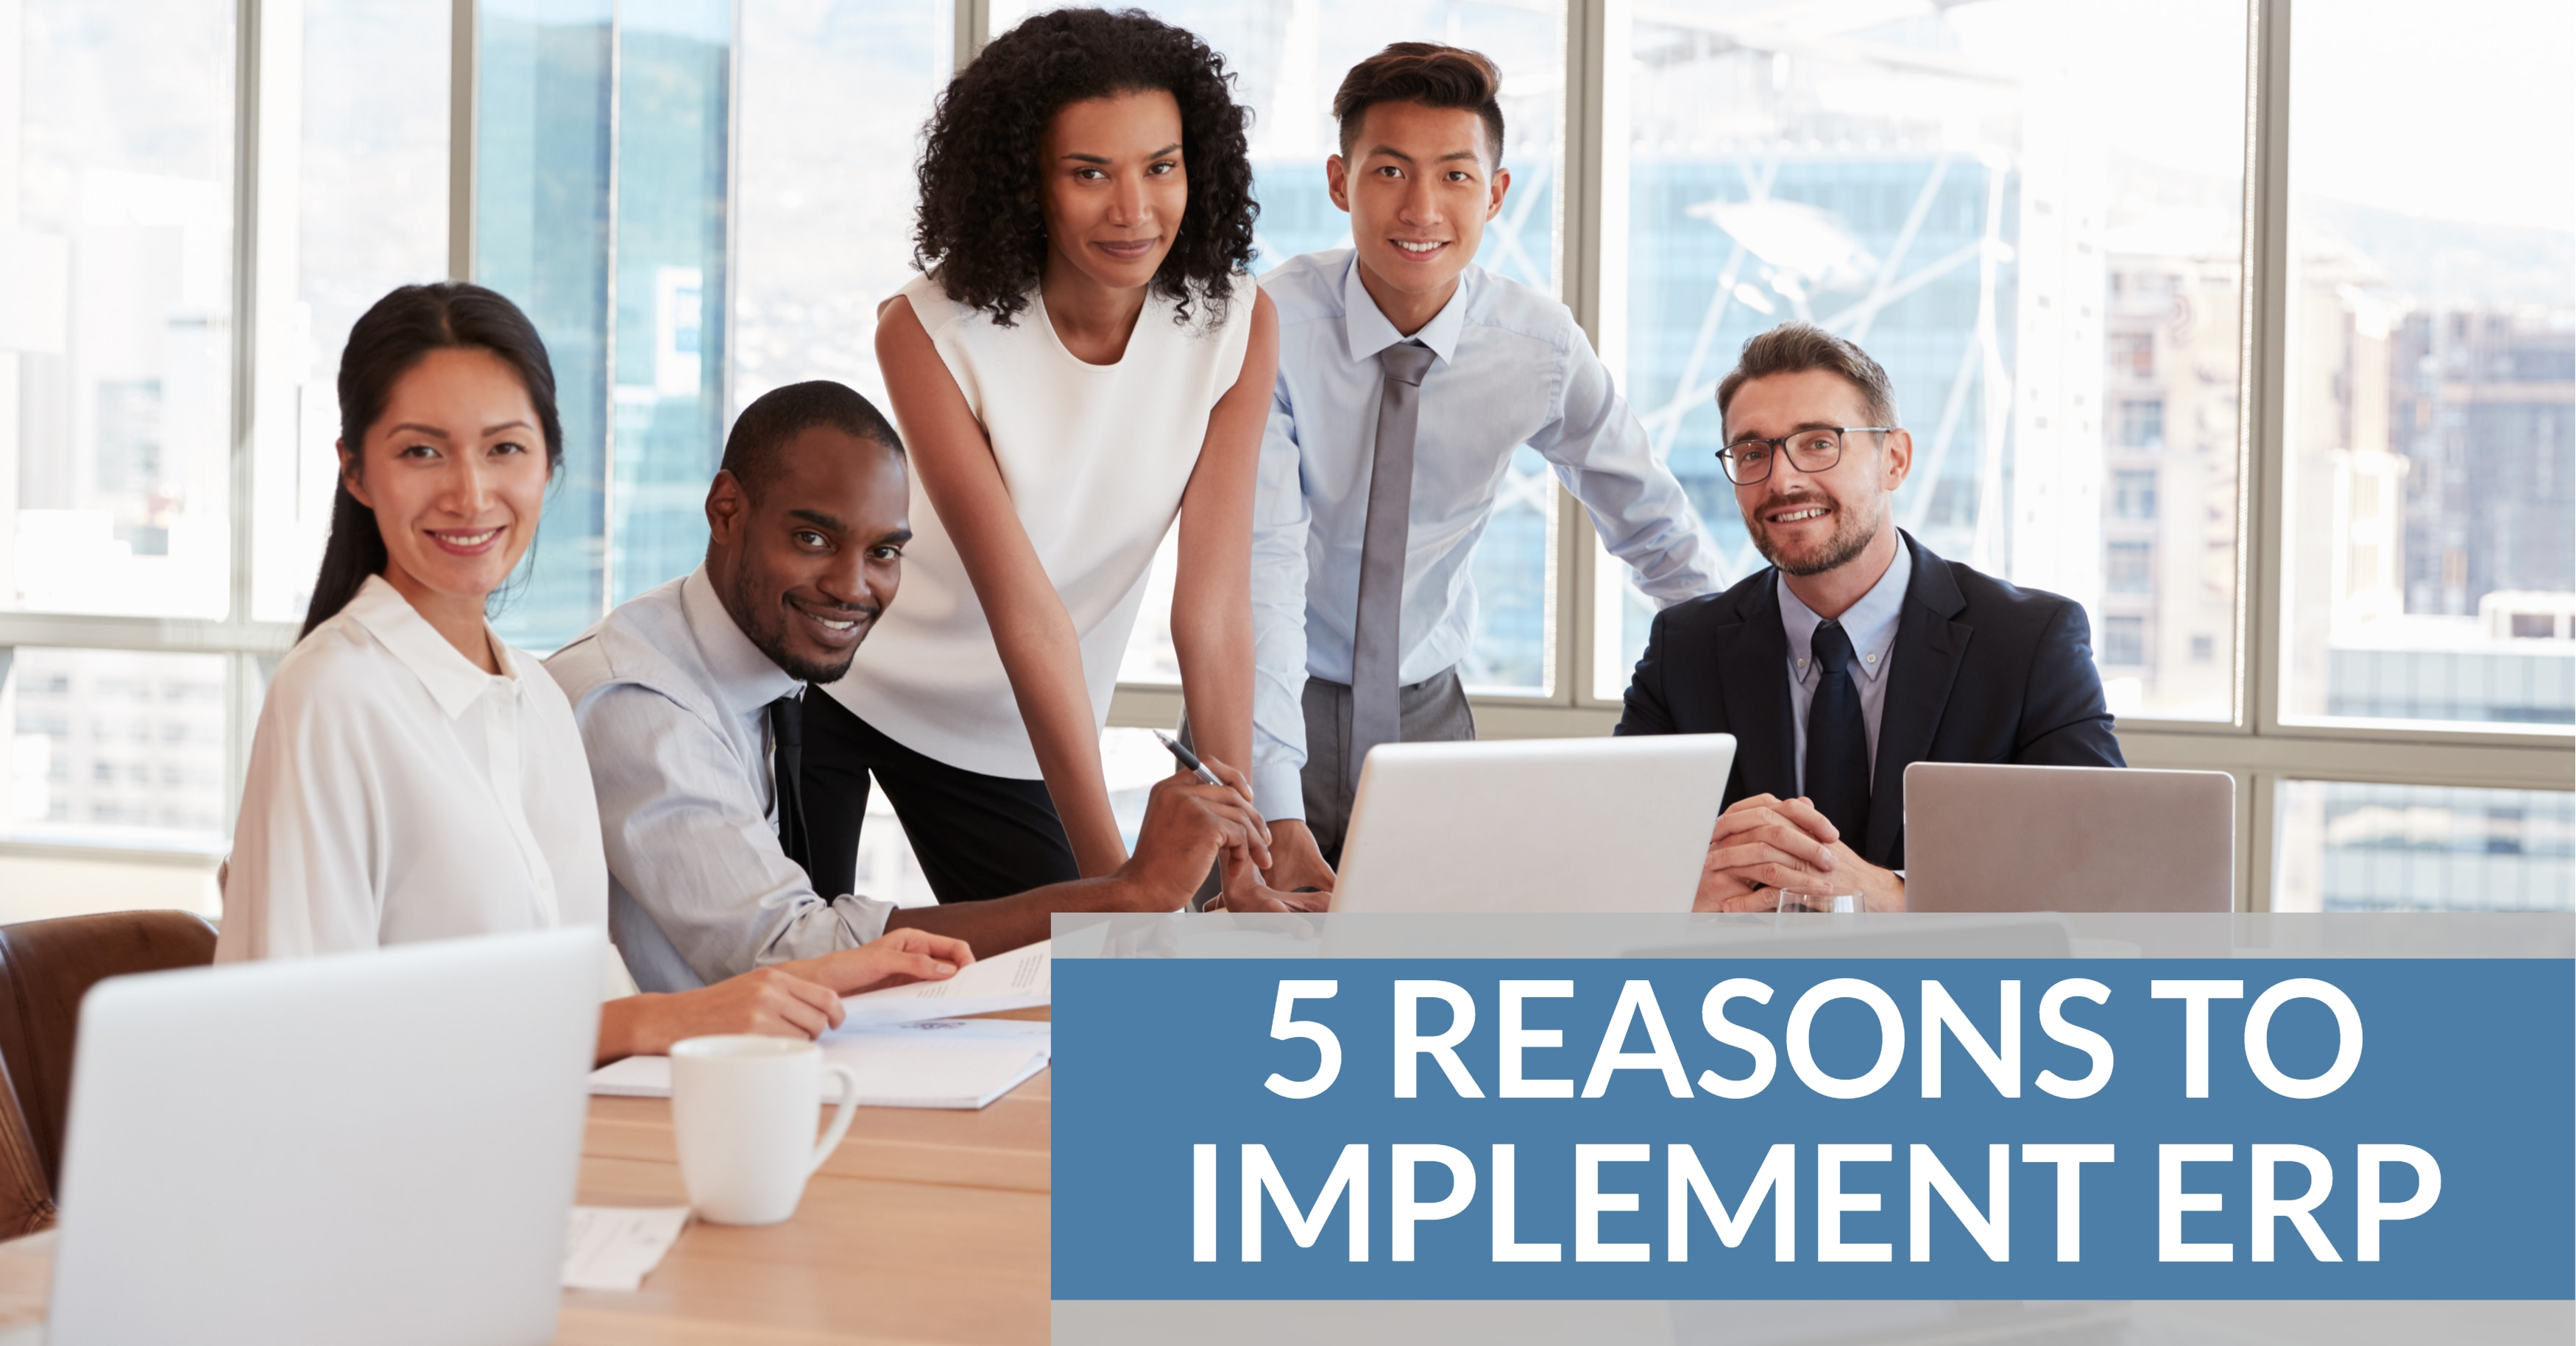 5 Reasons to Implement ERP Software